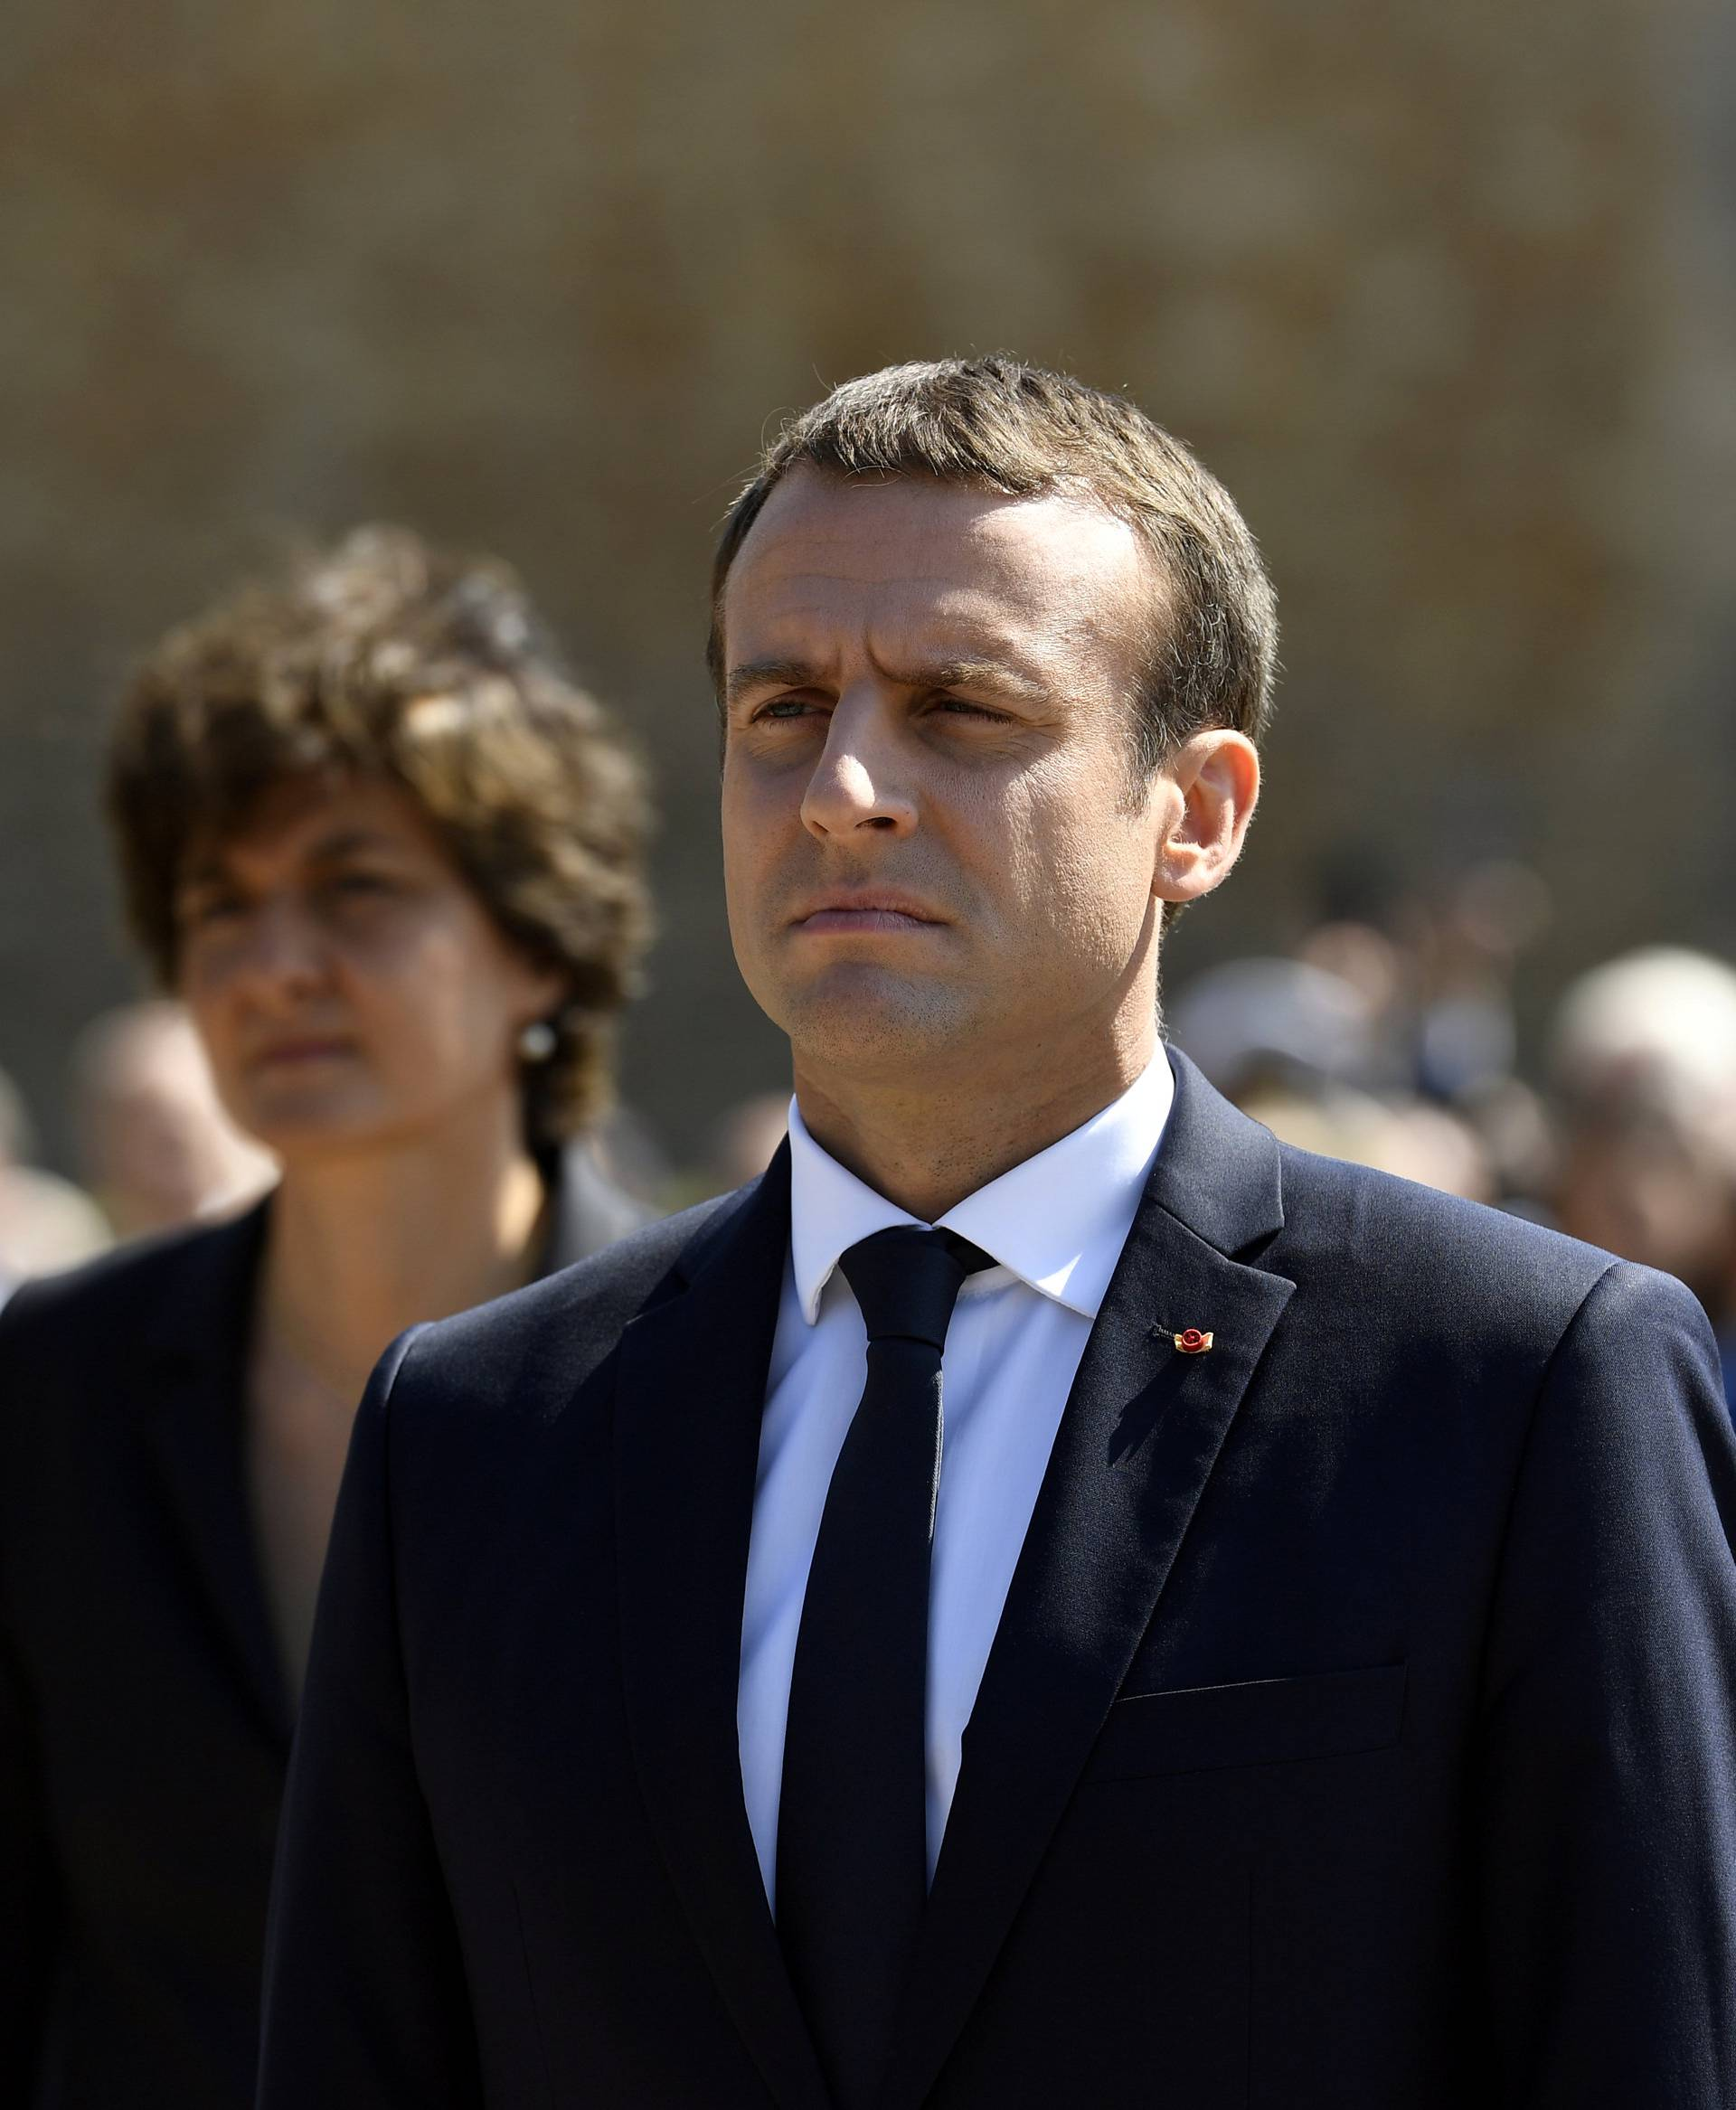 French President Emmanuel Macron attends a ceremony marking the 77th anniversary of late French General Charles de Gaulle's appeal of June 18, 1940, at the Mont Valerien memorial in Suresnes